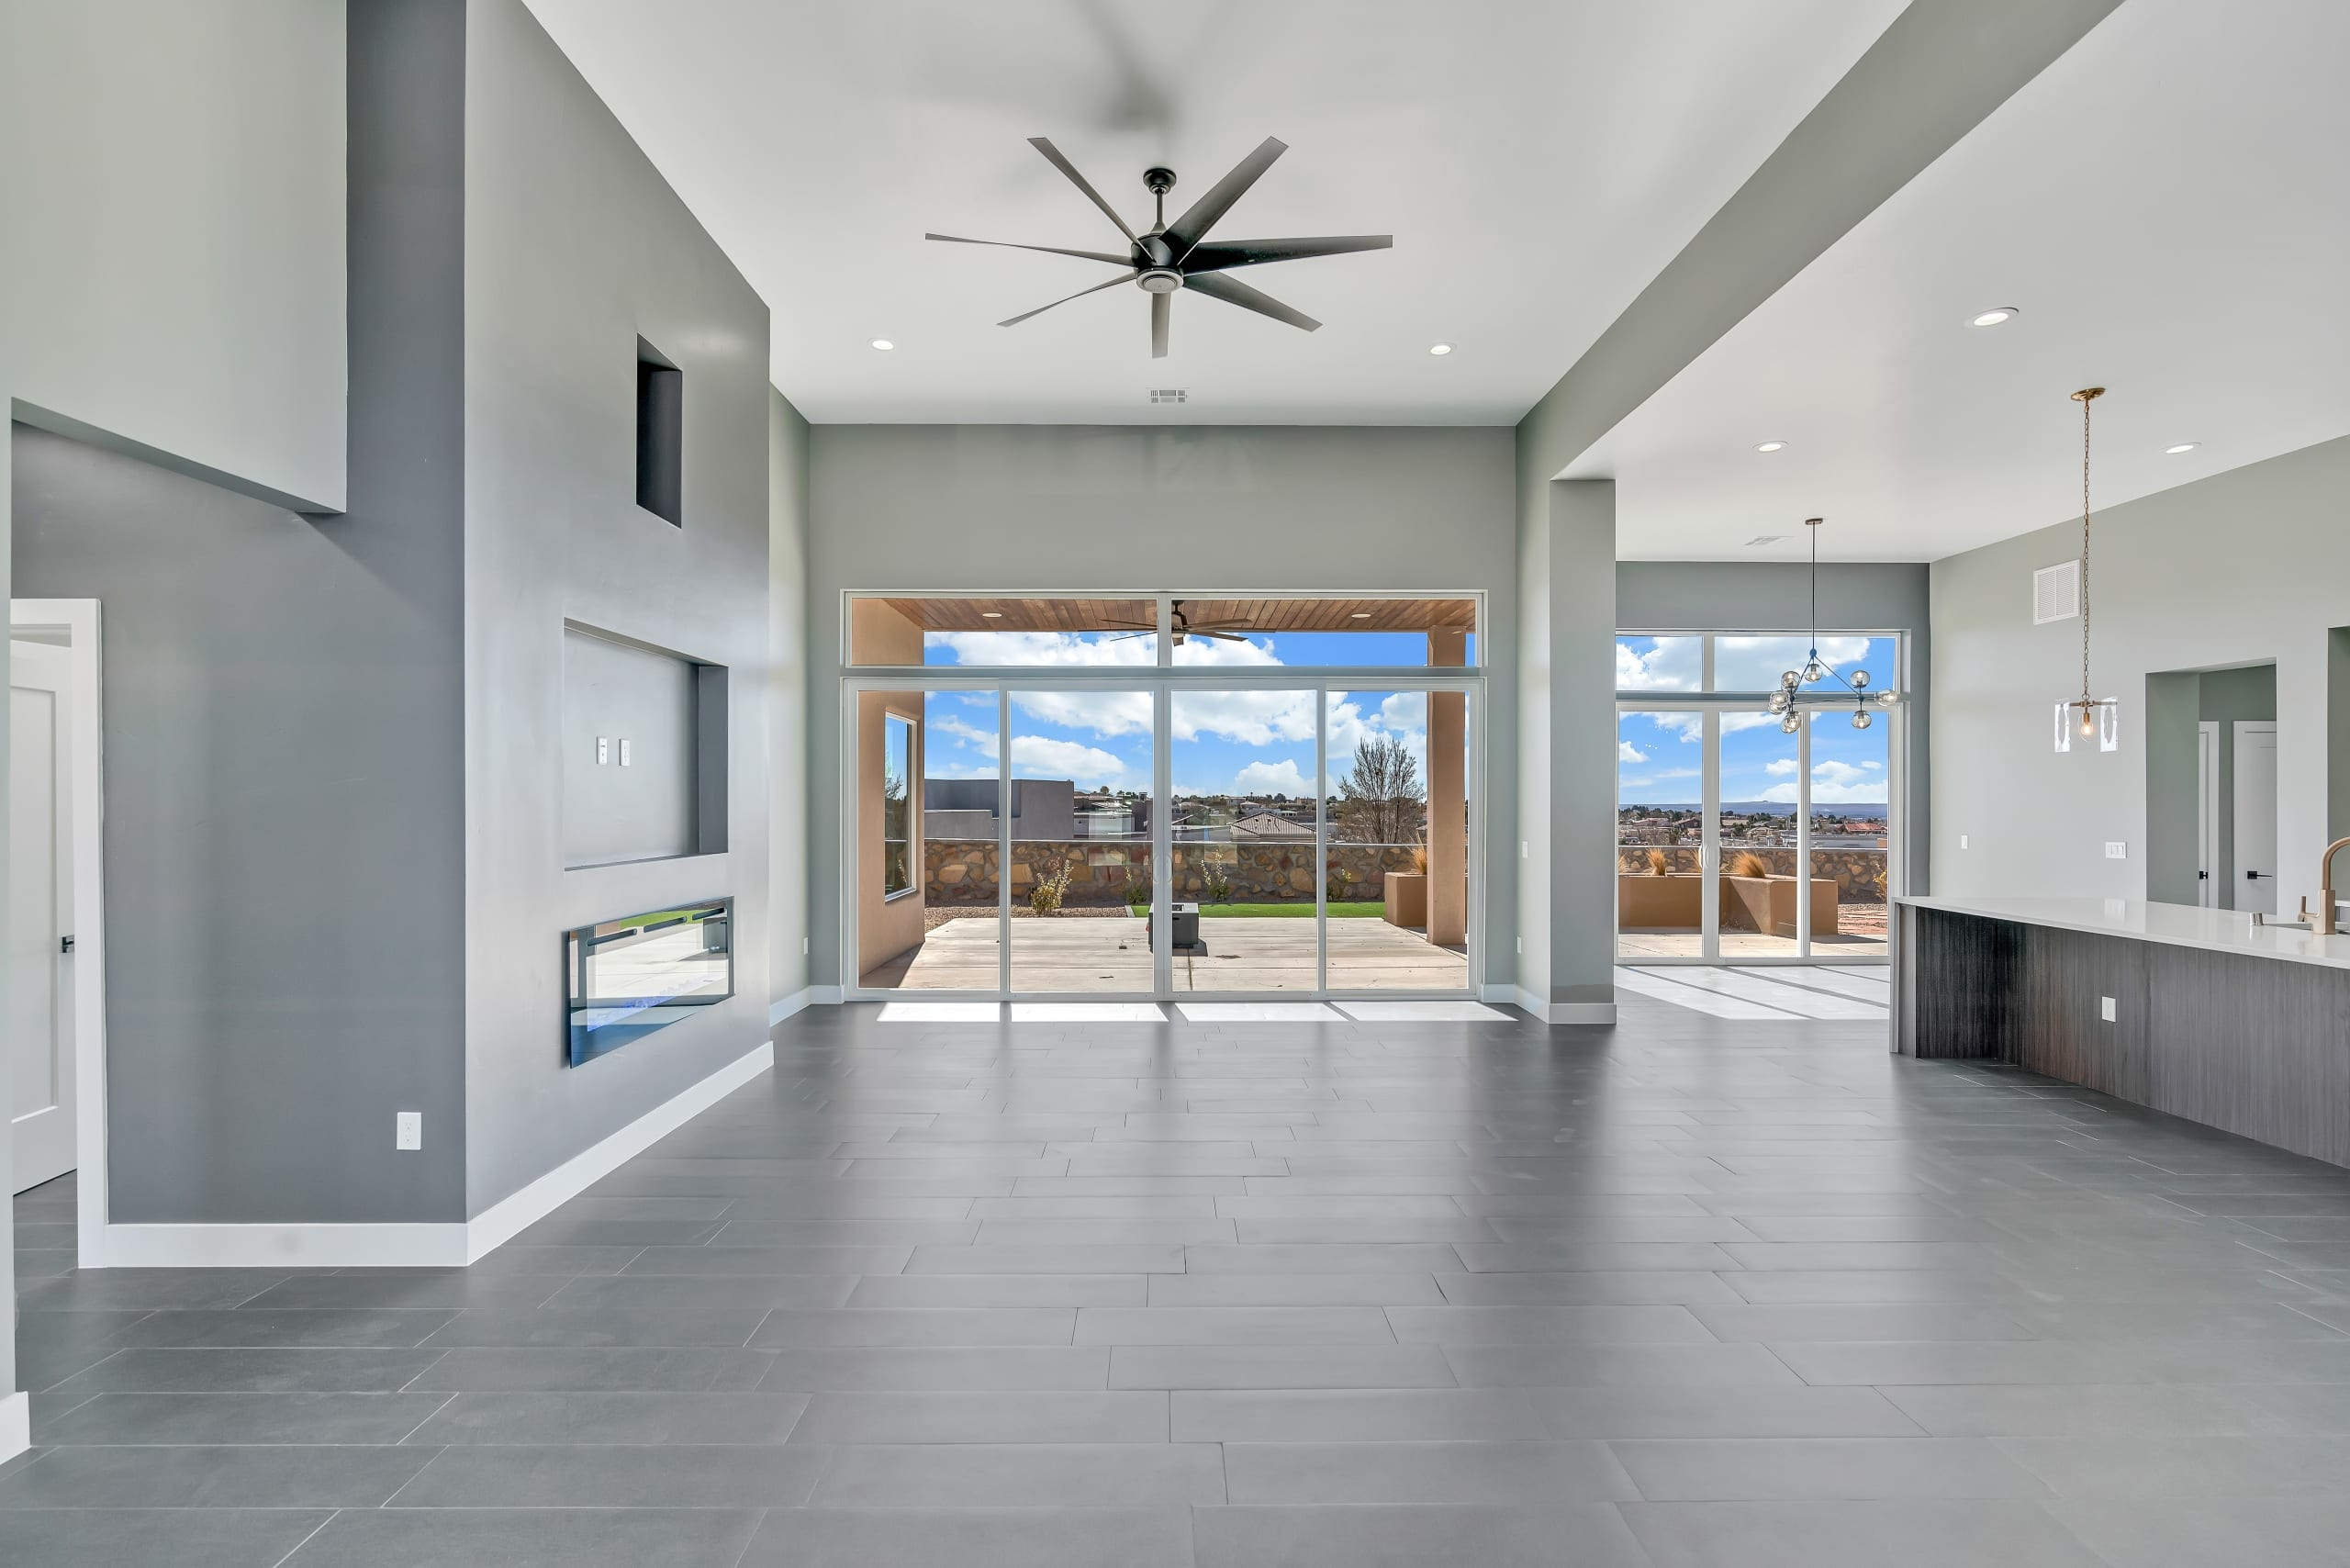 2914 East Springs - Great Room - View from Front Door Entry Way